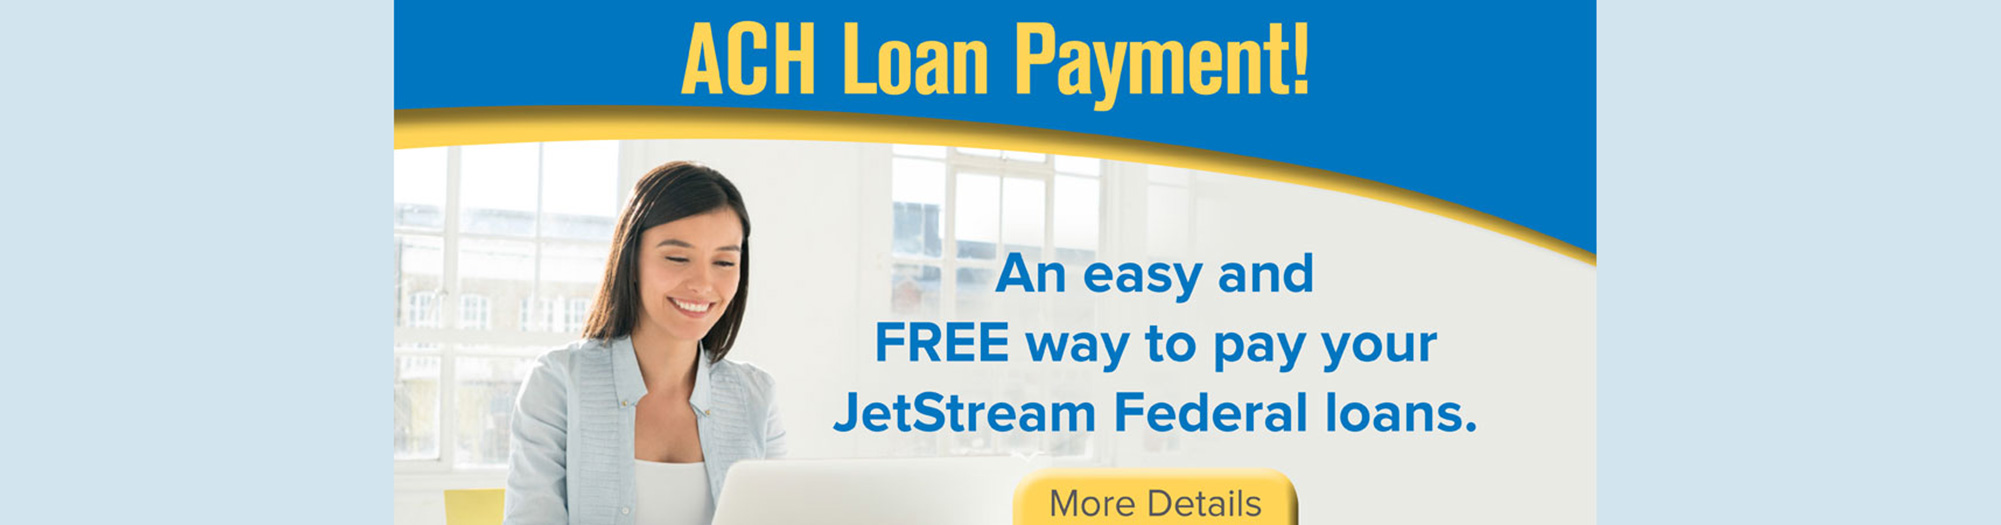 ACH Loan Payment, easy and FREE way to pay your loans